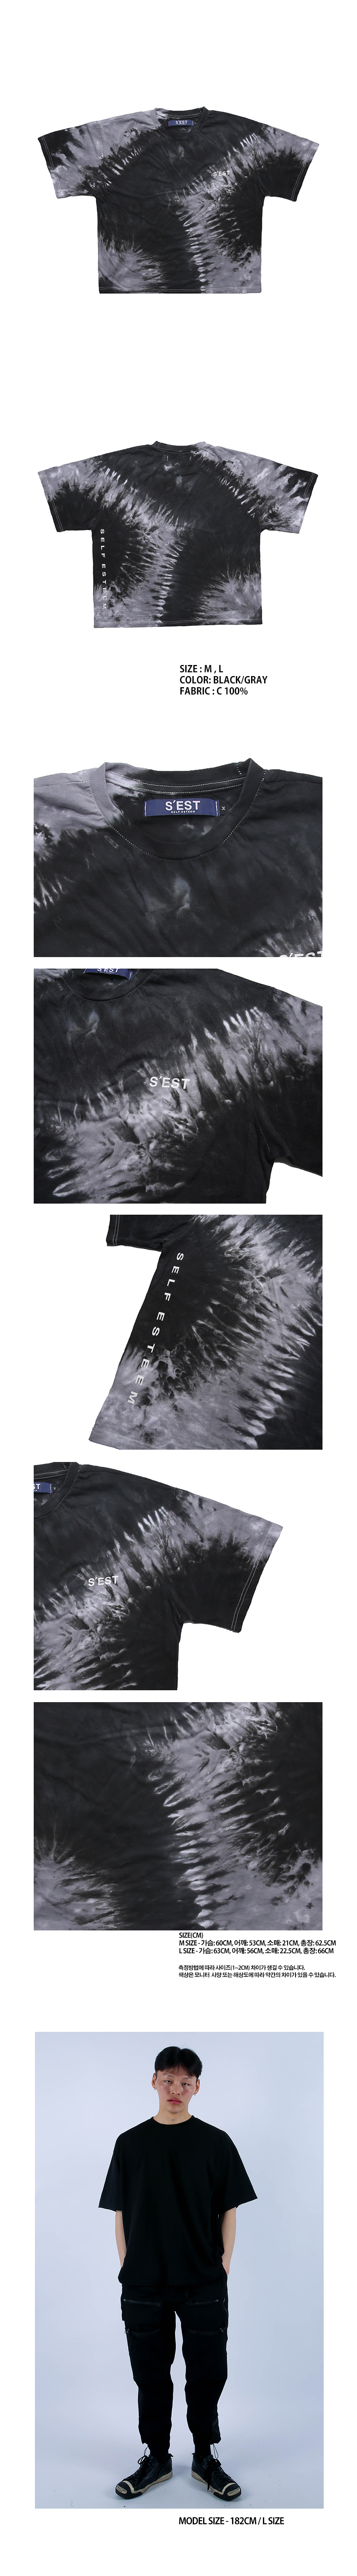 셀프이스팀(SELFESTEEM) SEST - STRING LOGO - TIEDYE SHORT -(SESSEST-004) - Black/Gray